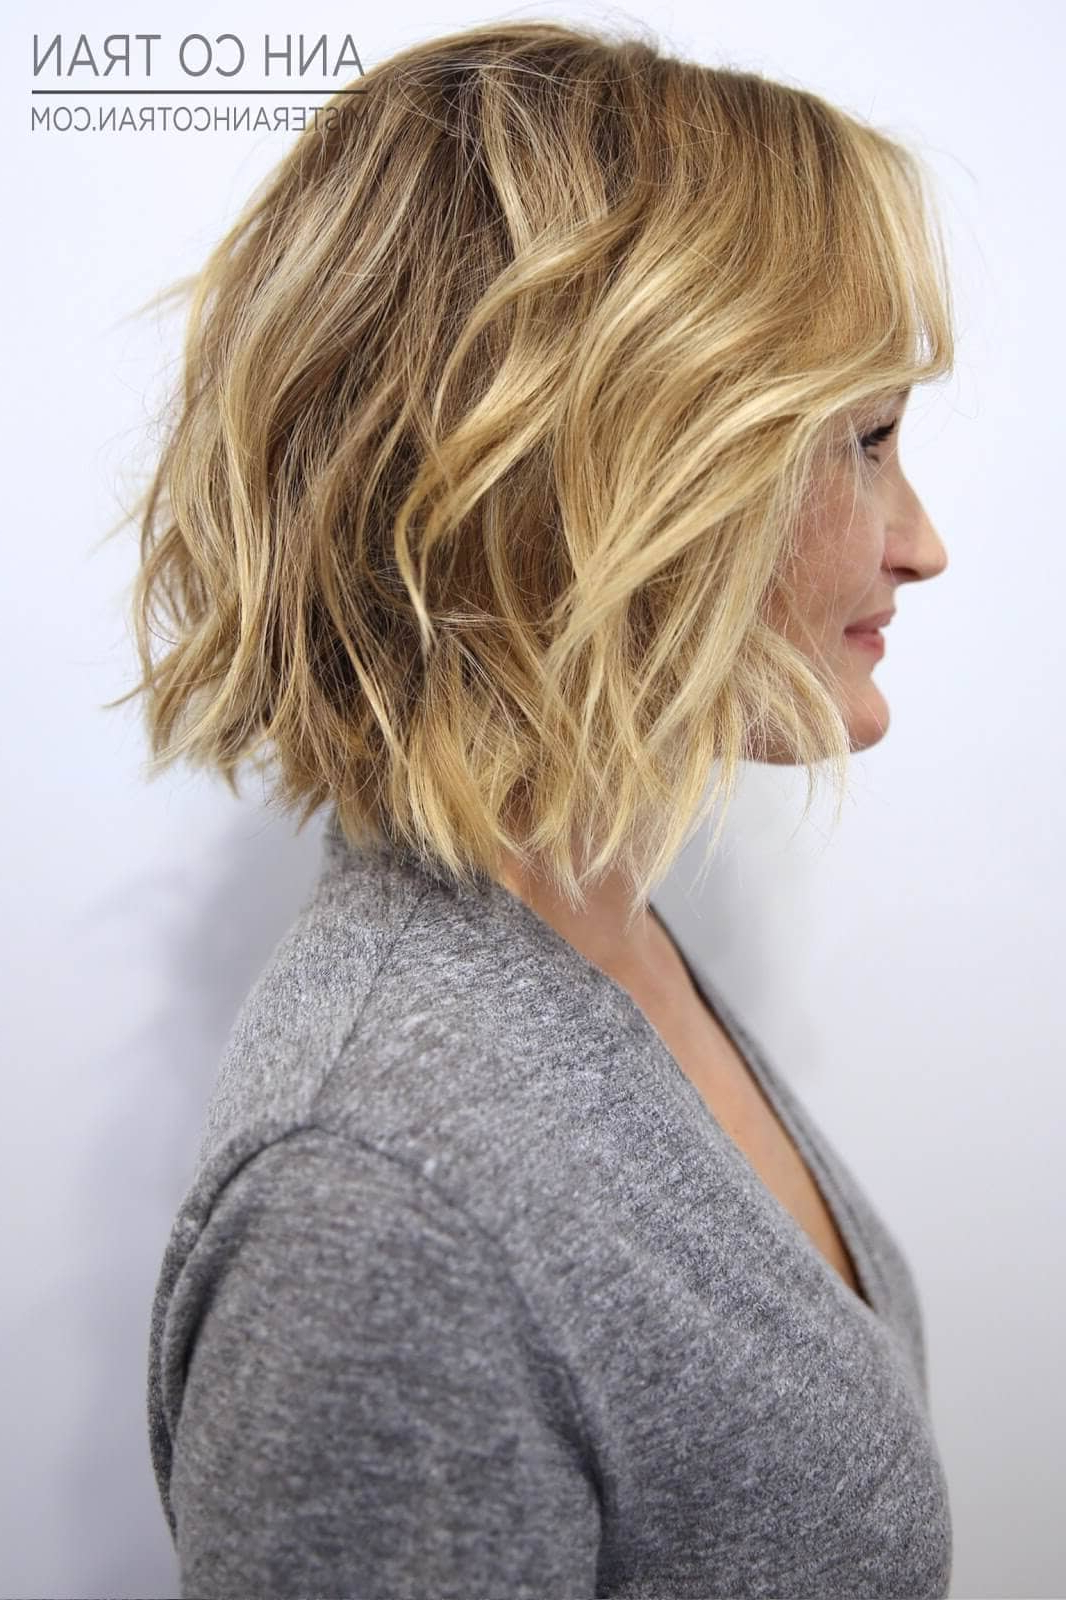 50 Ways To Wear Short Hair With Bangs For A Fresh New Look With Regard To Widely Used Beach Wave Bob Hairstyles With Highlights (View 17 of 20)